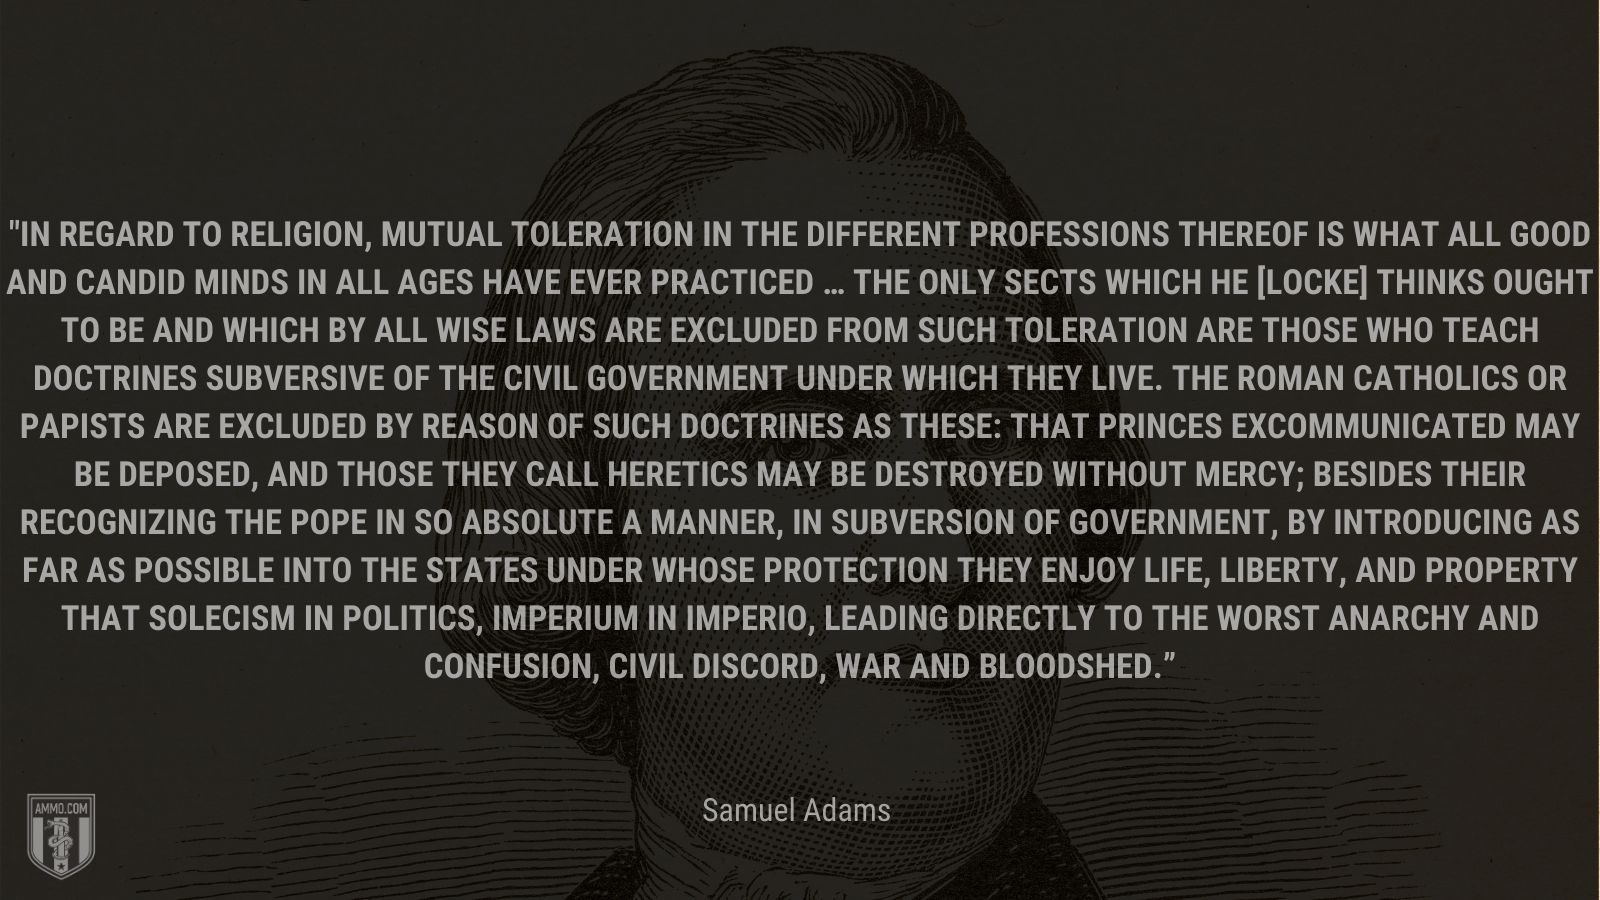 """""""In regard to religion, mutual toleration in the different professions thereof is what all good and candid minds in all ages have ever practiced … The only sects which he [Locke] thinks ought to be and which by all wise laws are excluded from such toleration are those who teach doctrines subversive of the civil government under which they live. The Roman Catholics or Papists are excluded by reason of such doctrines as these: that princes excommunicated may be deposed, and those they call heretics may be destroyed without mercy; besides their recognizing the pope in so absolute a manner, in subversion of government, by introducing as far as possible into the states under whose protection they enjoy life, liberty, and property that solecism in politics, Imperium in imperio, leading directly to the worst anarchy and confusion, civil discord, war and bloodshed."""" - Samuel Adams"""